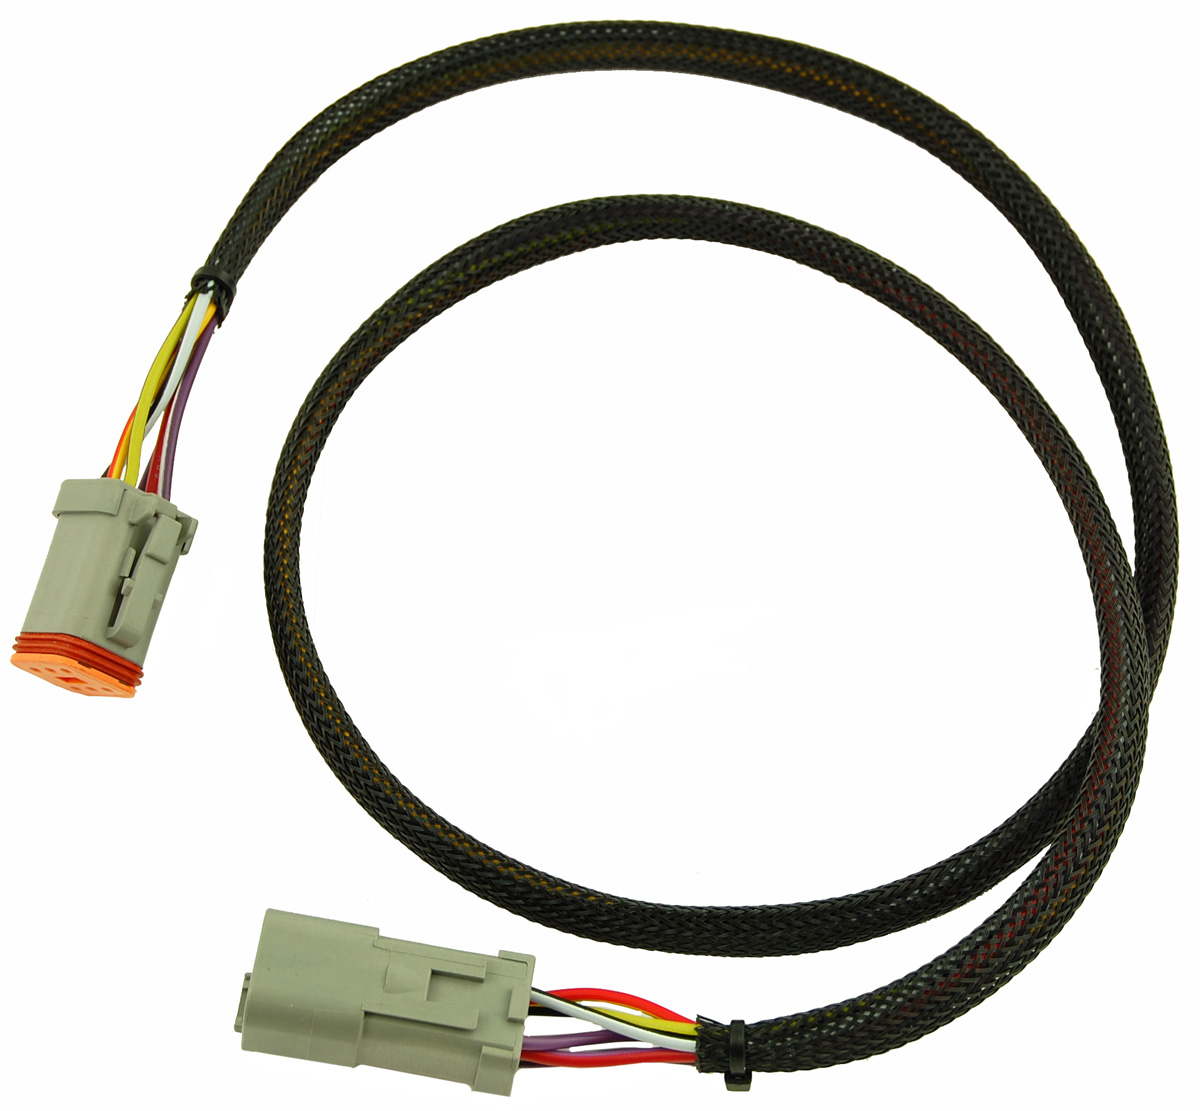 Evinrude Power Trim Switches Mercruiser Wiring Harness Switch Extension Between And Dash Wire Harnesses 1200x1111